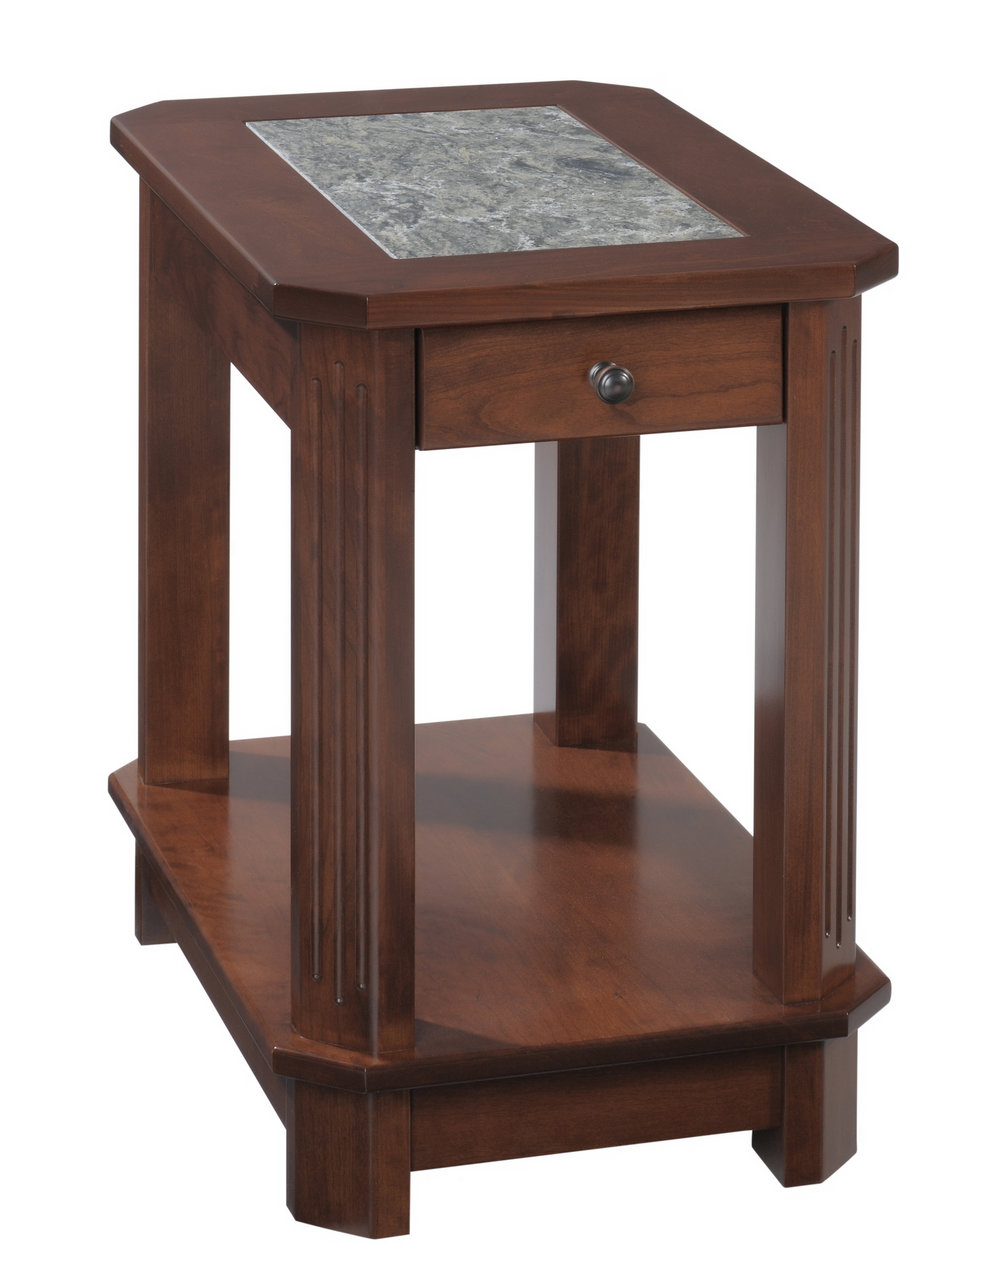 60181-franchi-chairside-table-cherry-ocs107-washington-wentwood.jpg